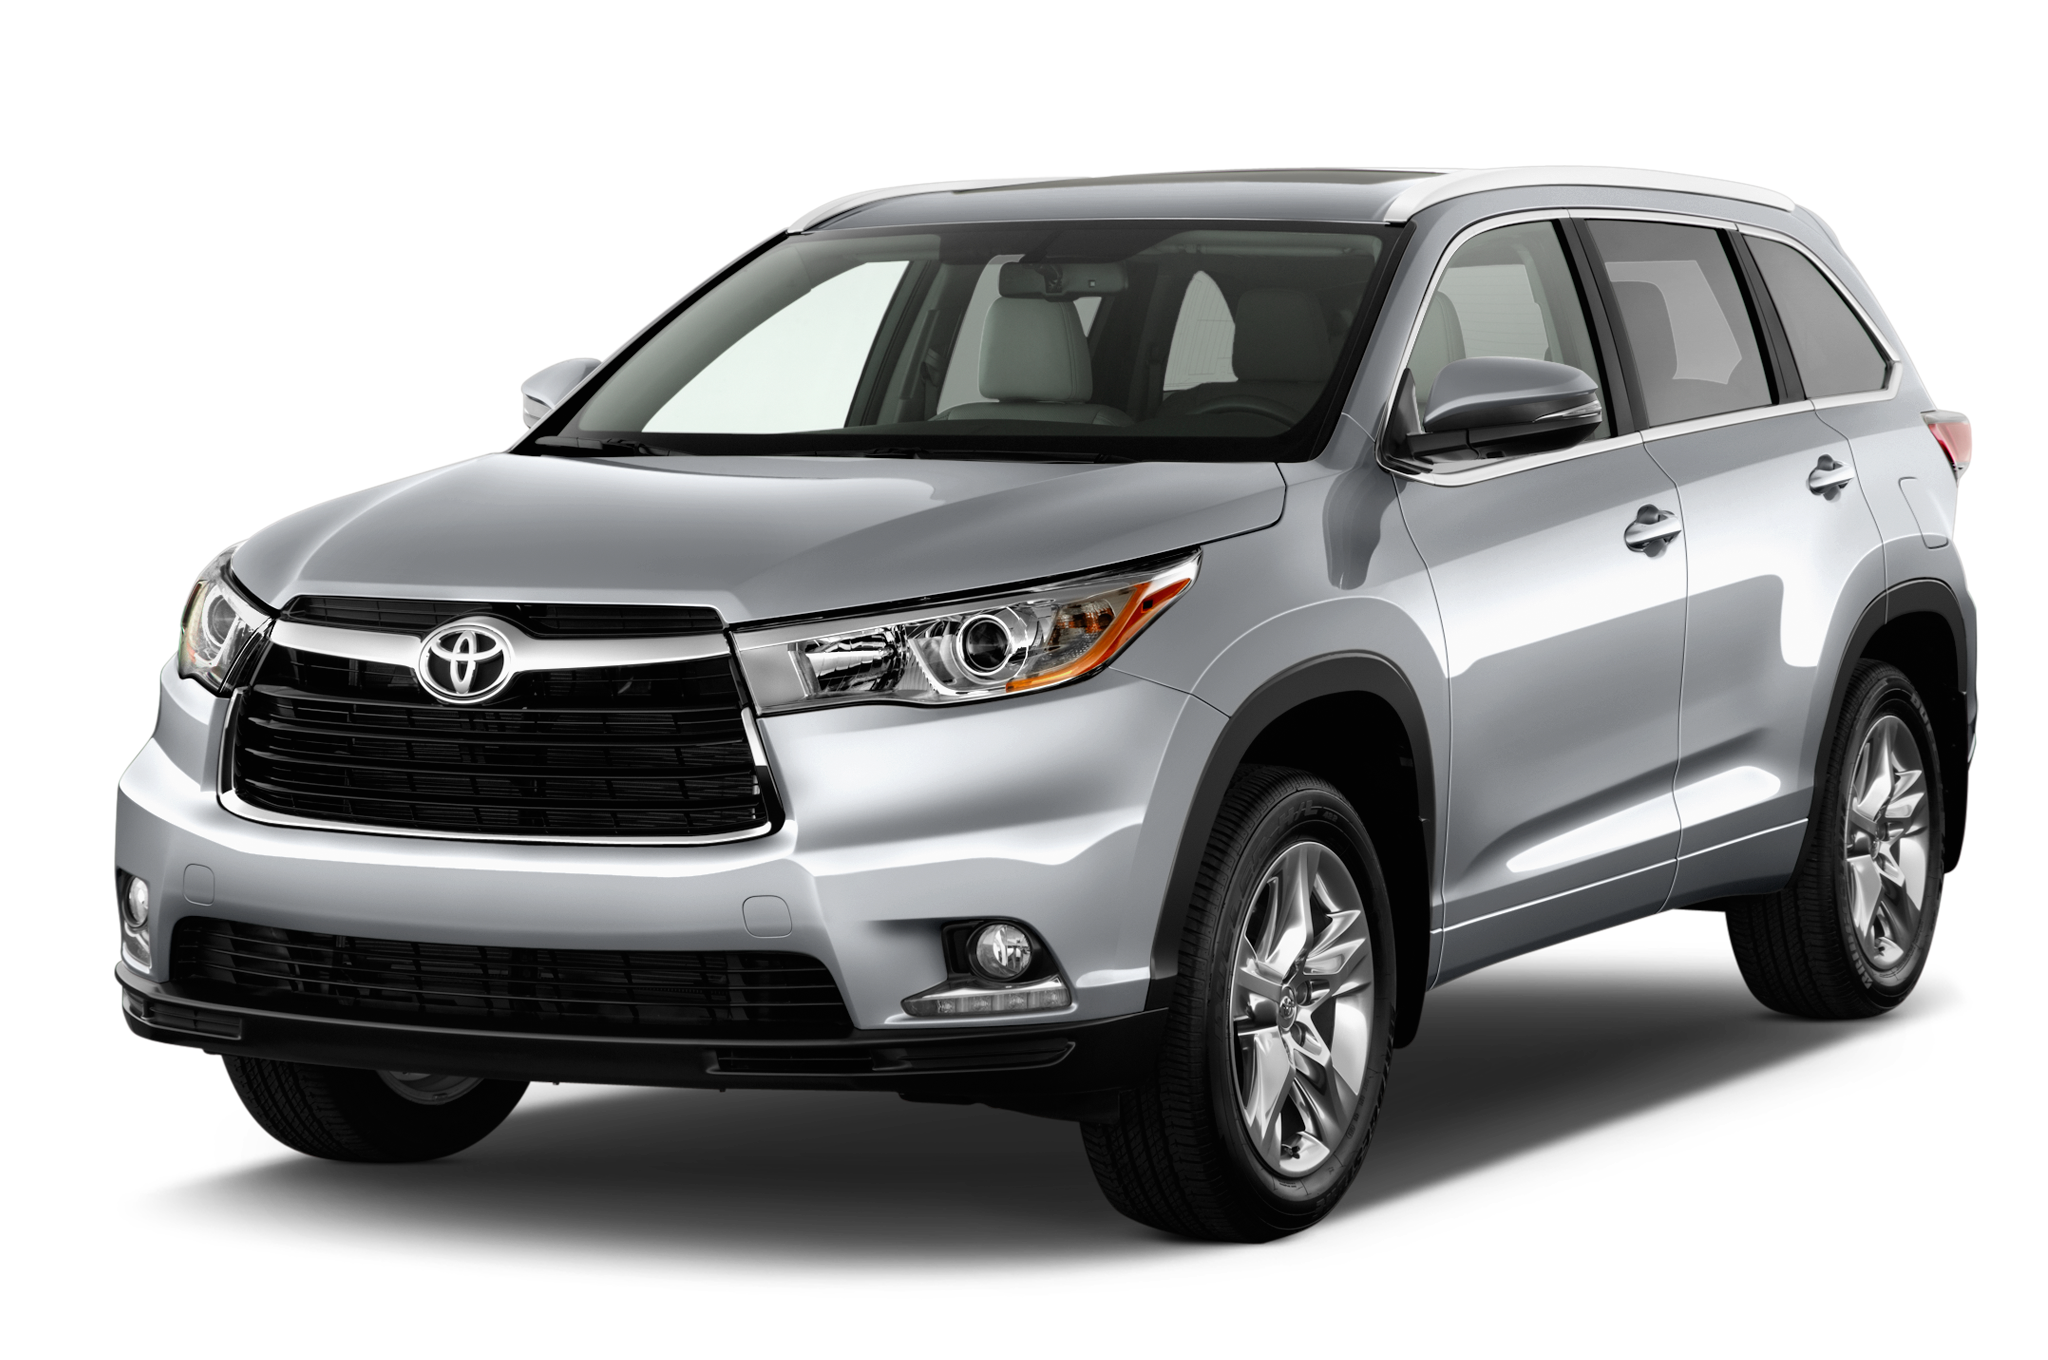 2016 toyota highlander le plus 4x4 v6 overview msn autos. Black Bedroom Furniture Sets. Home Design Ideas